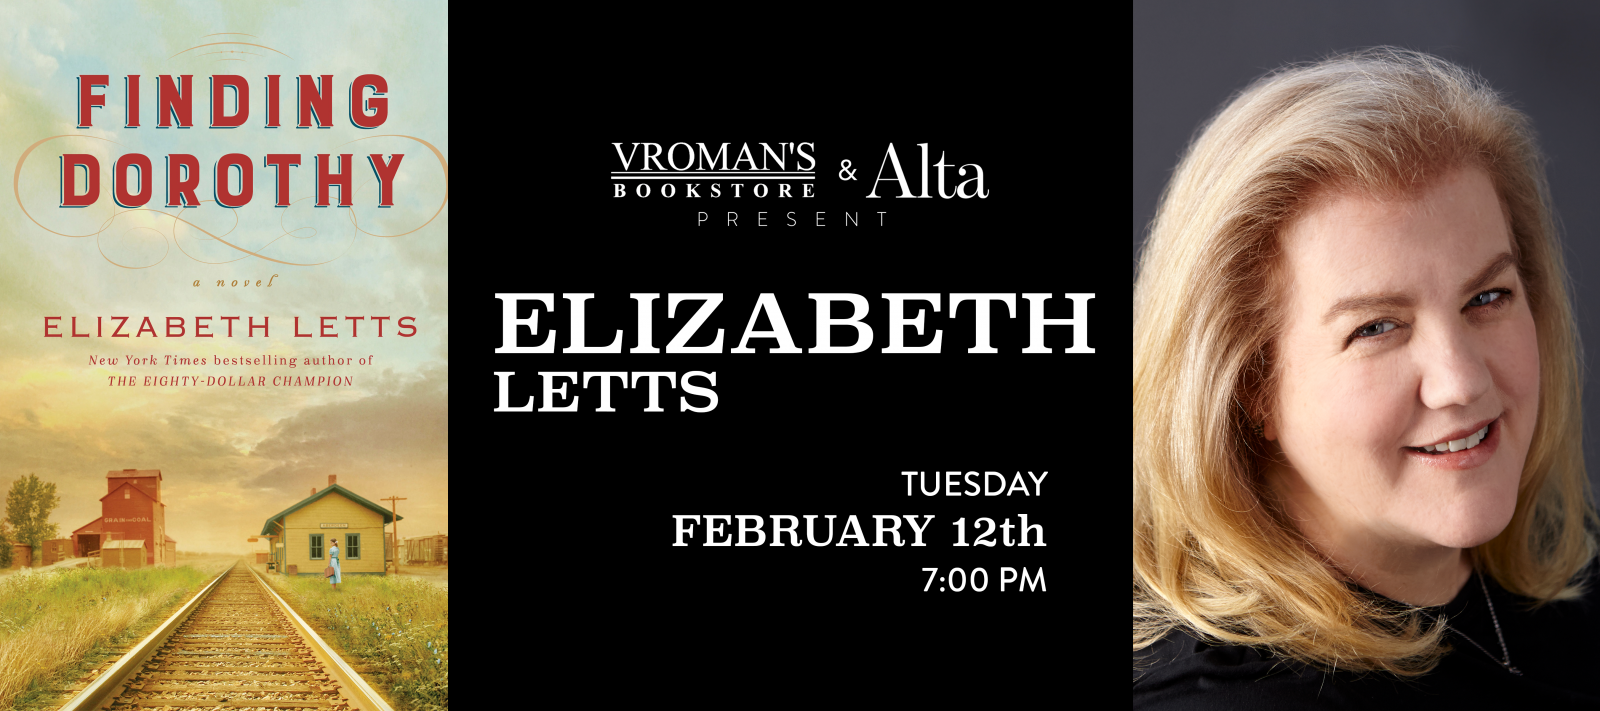 Elizabeth Letts Tuesday February 12th at 7pm